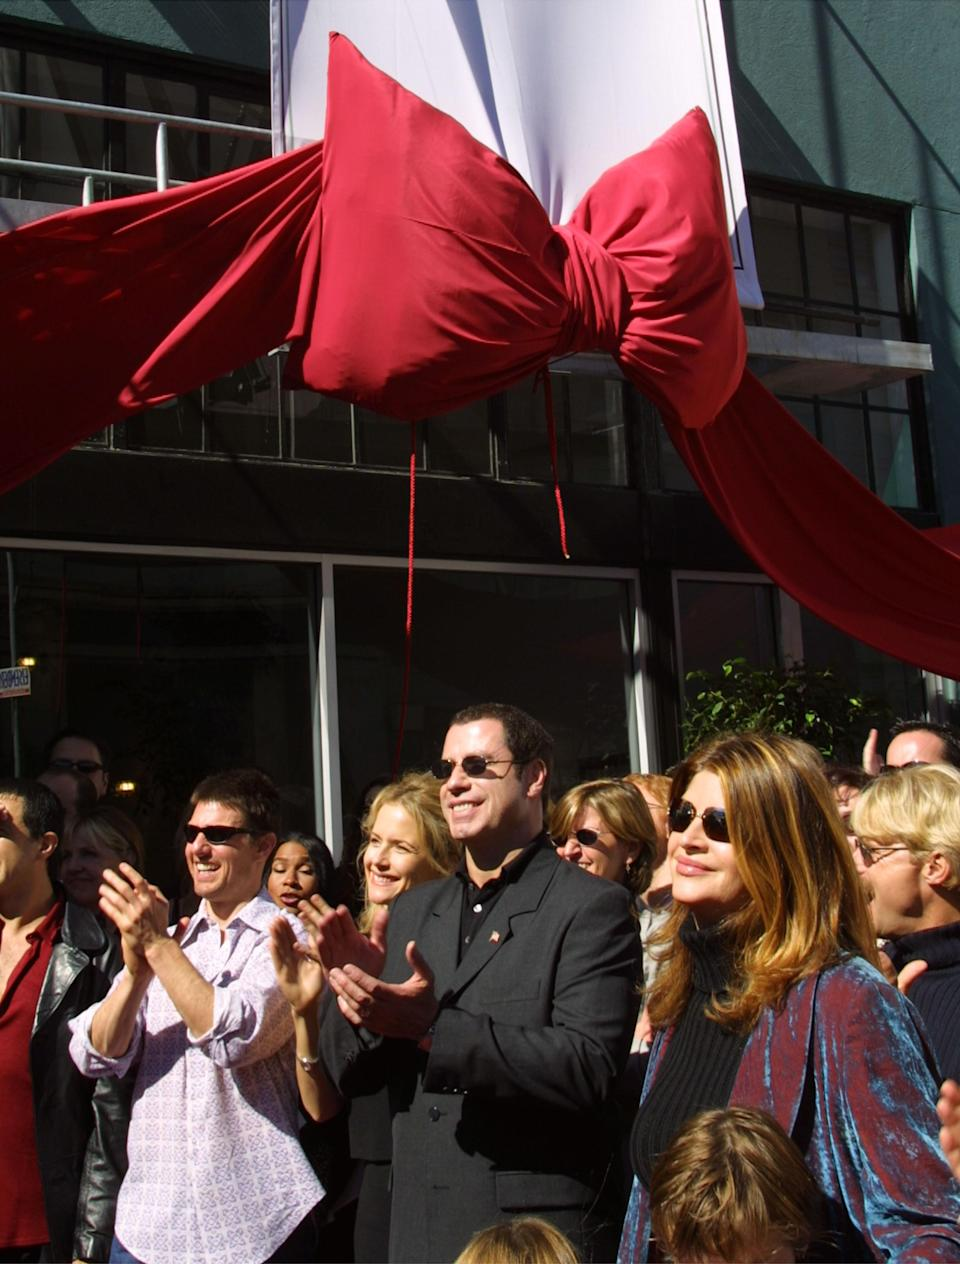 Actors Tom Cruise, Kelly Preston, John Travolta, and Kirstie Alley listen to Jenna Elfman speak at the opening of the Church of Scientology, Mission of SoMa (San Francisco), in September 2001. (Photo: Getty Images).